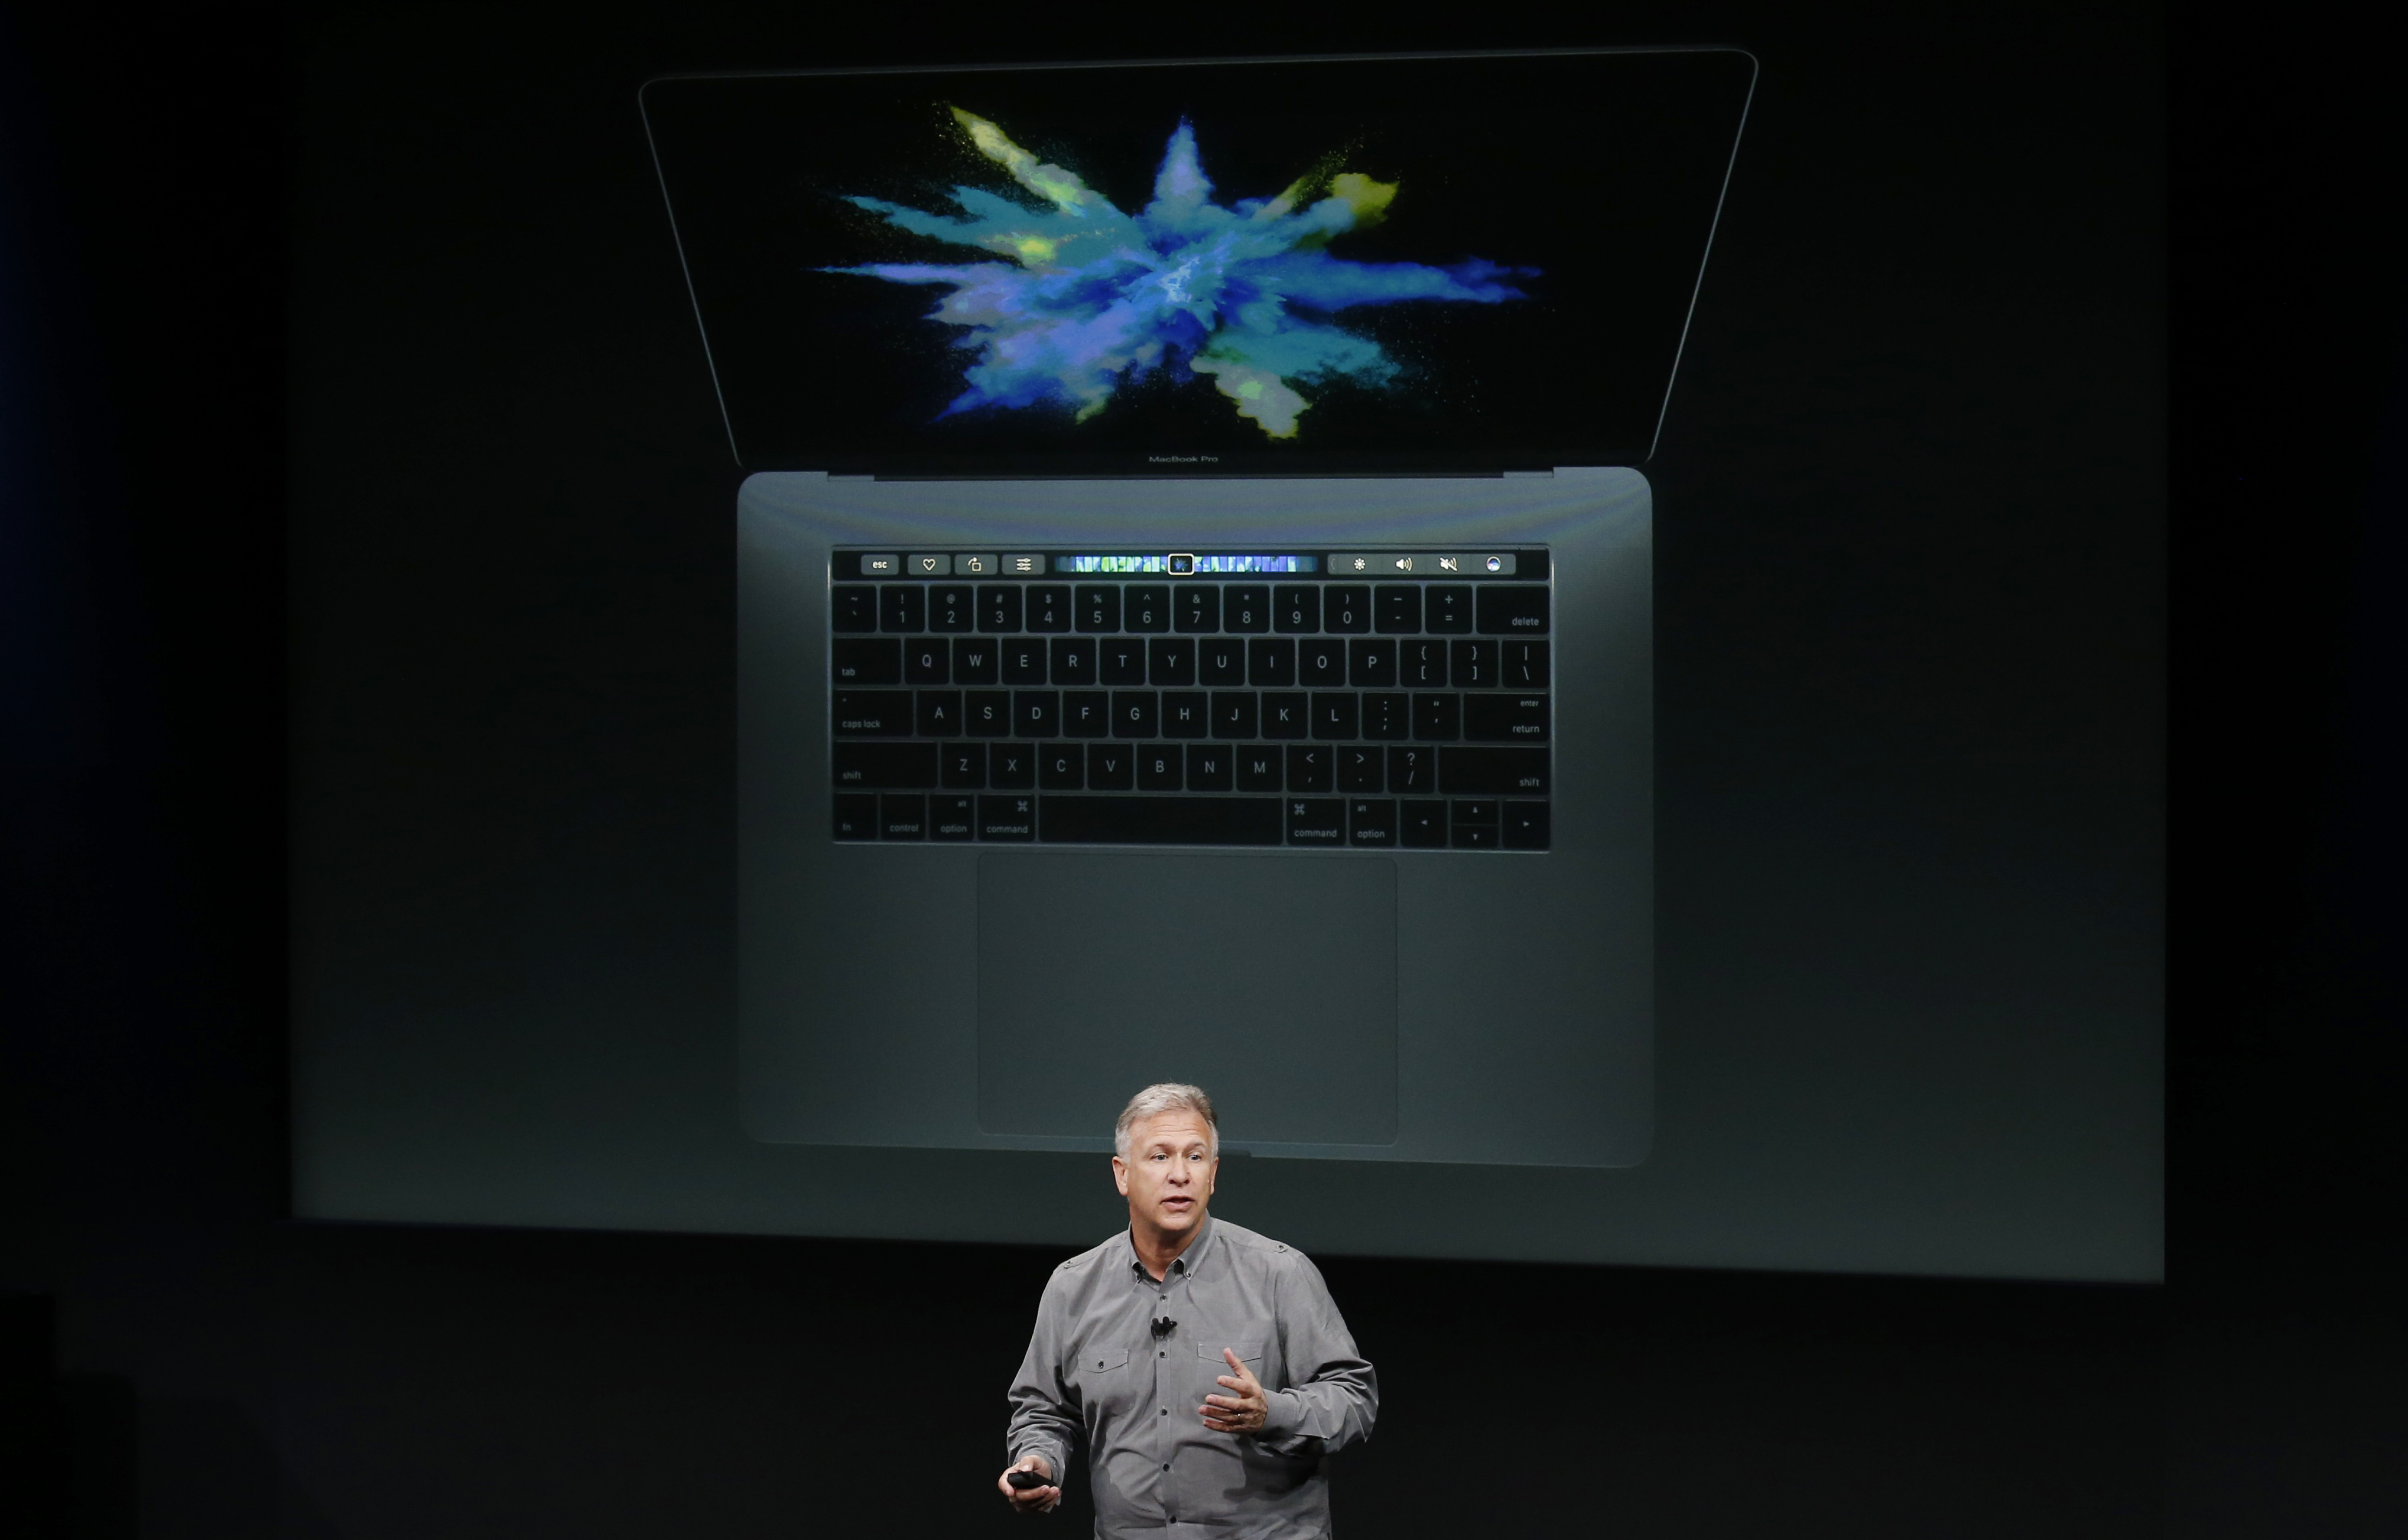 Phil Schiller, senior vice president of worldwide marketing at Apple, speaks under a graphic of a new MacBook Pro during an Apple media event in Cupertino